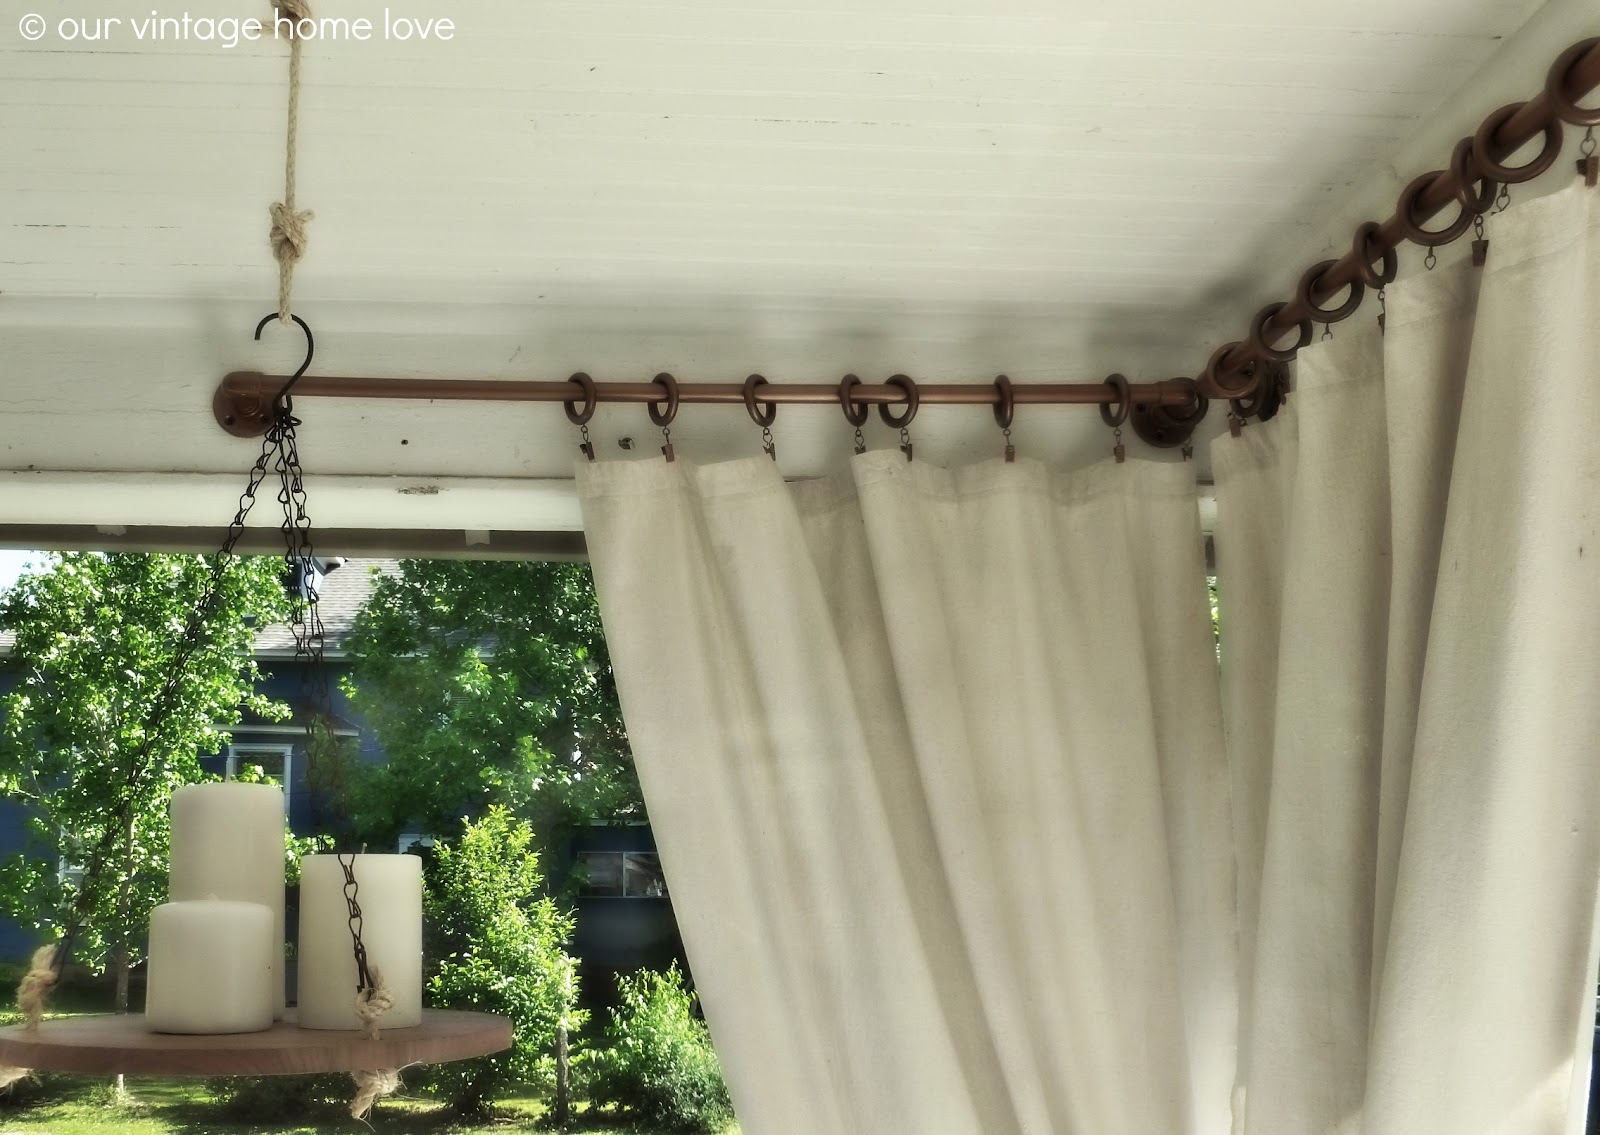 vintage home love: Back/Side Porch Ideas For Summer and An ...